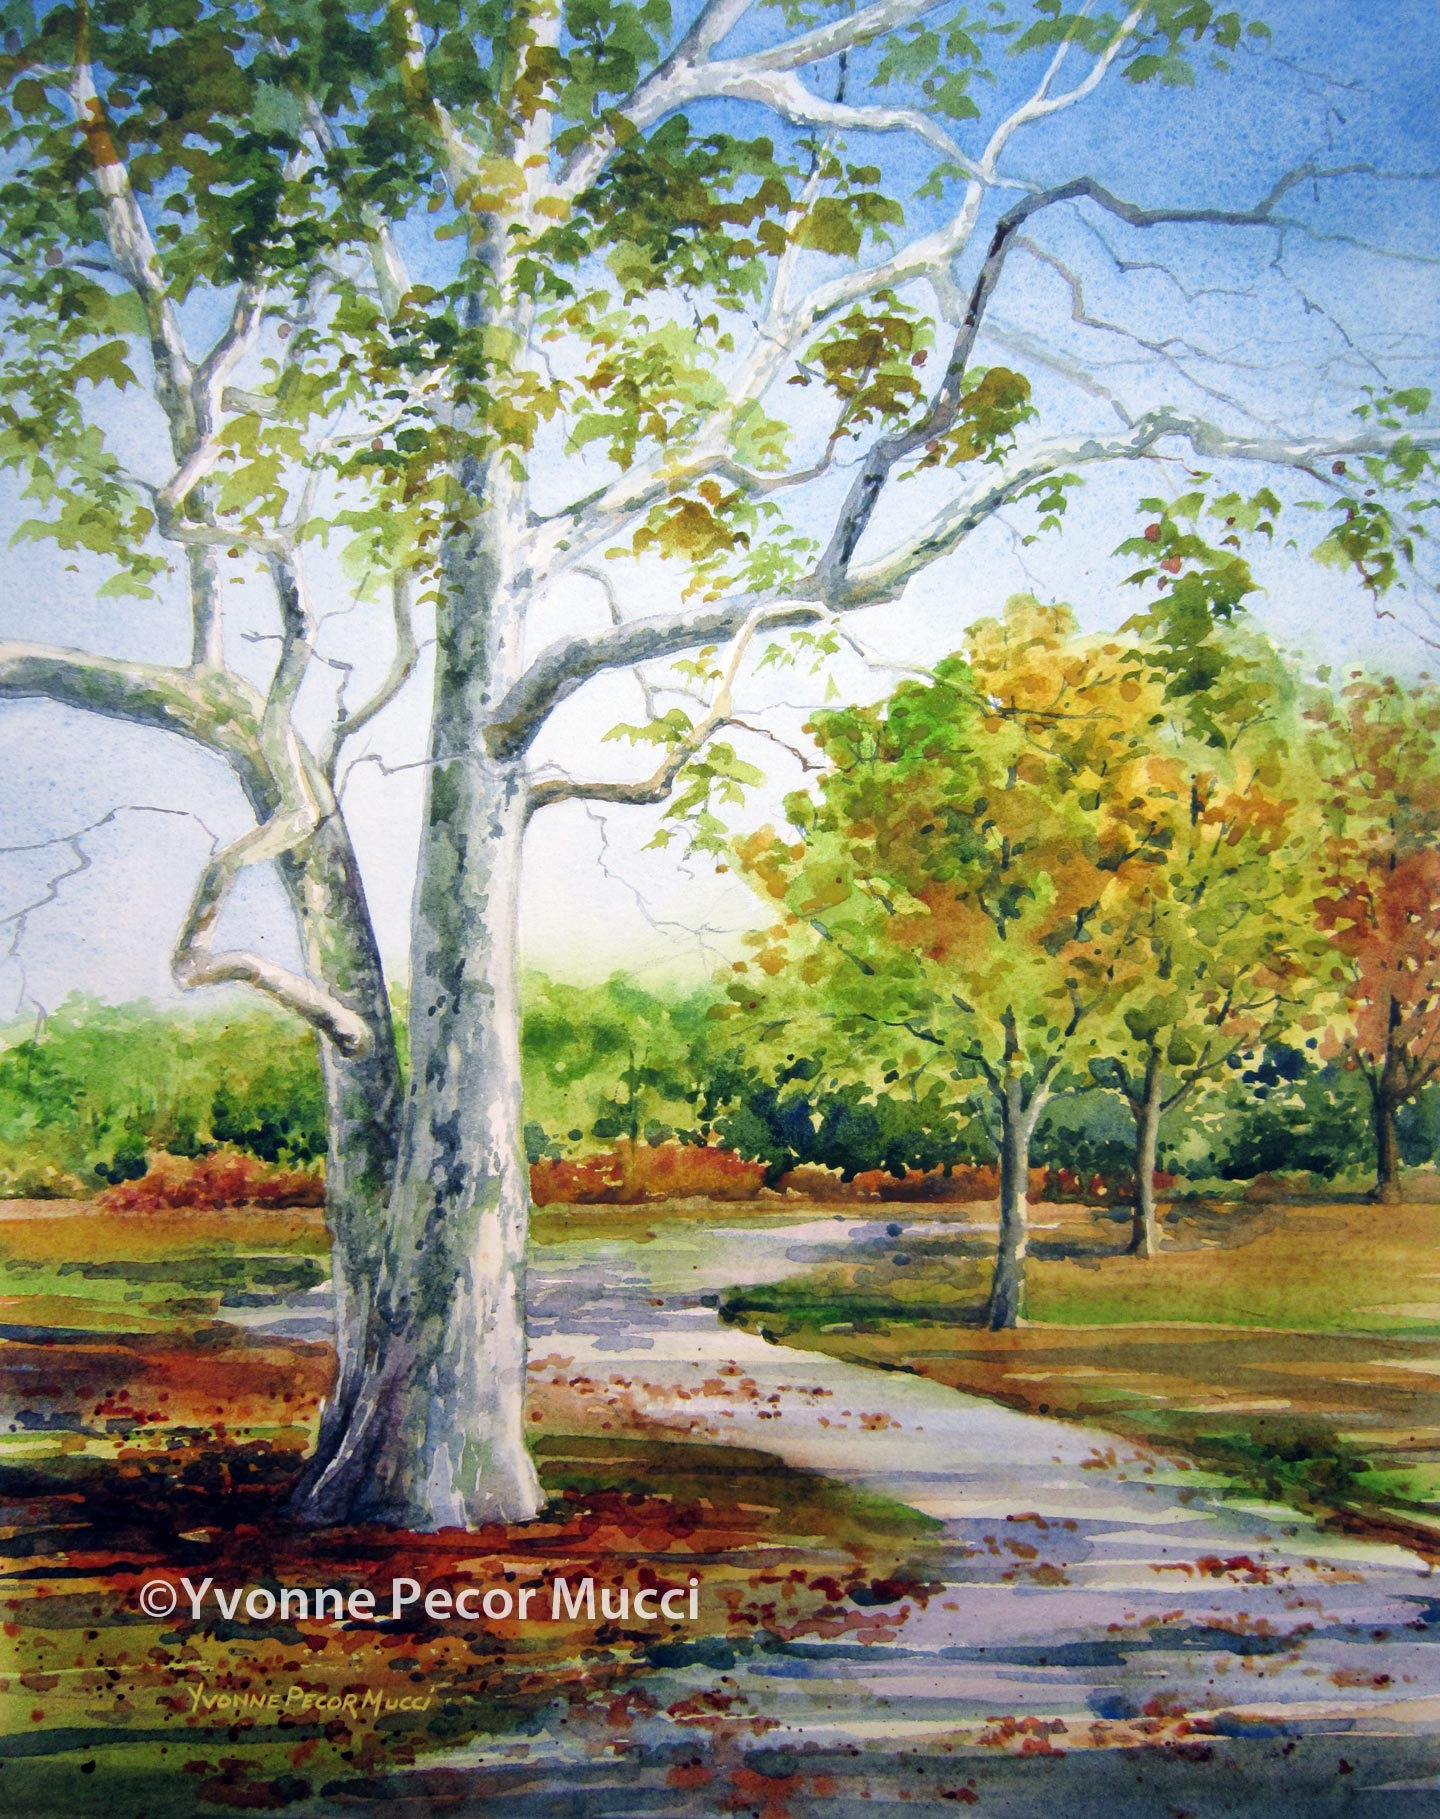 Sycamore Walk watercolor by Yvonne Pecor Mucci (Framed 16 x 20, Available)